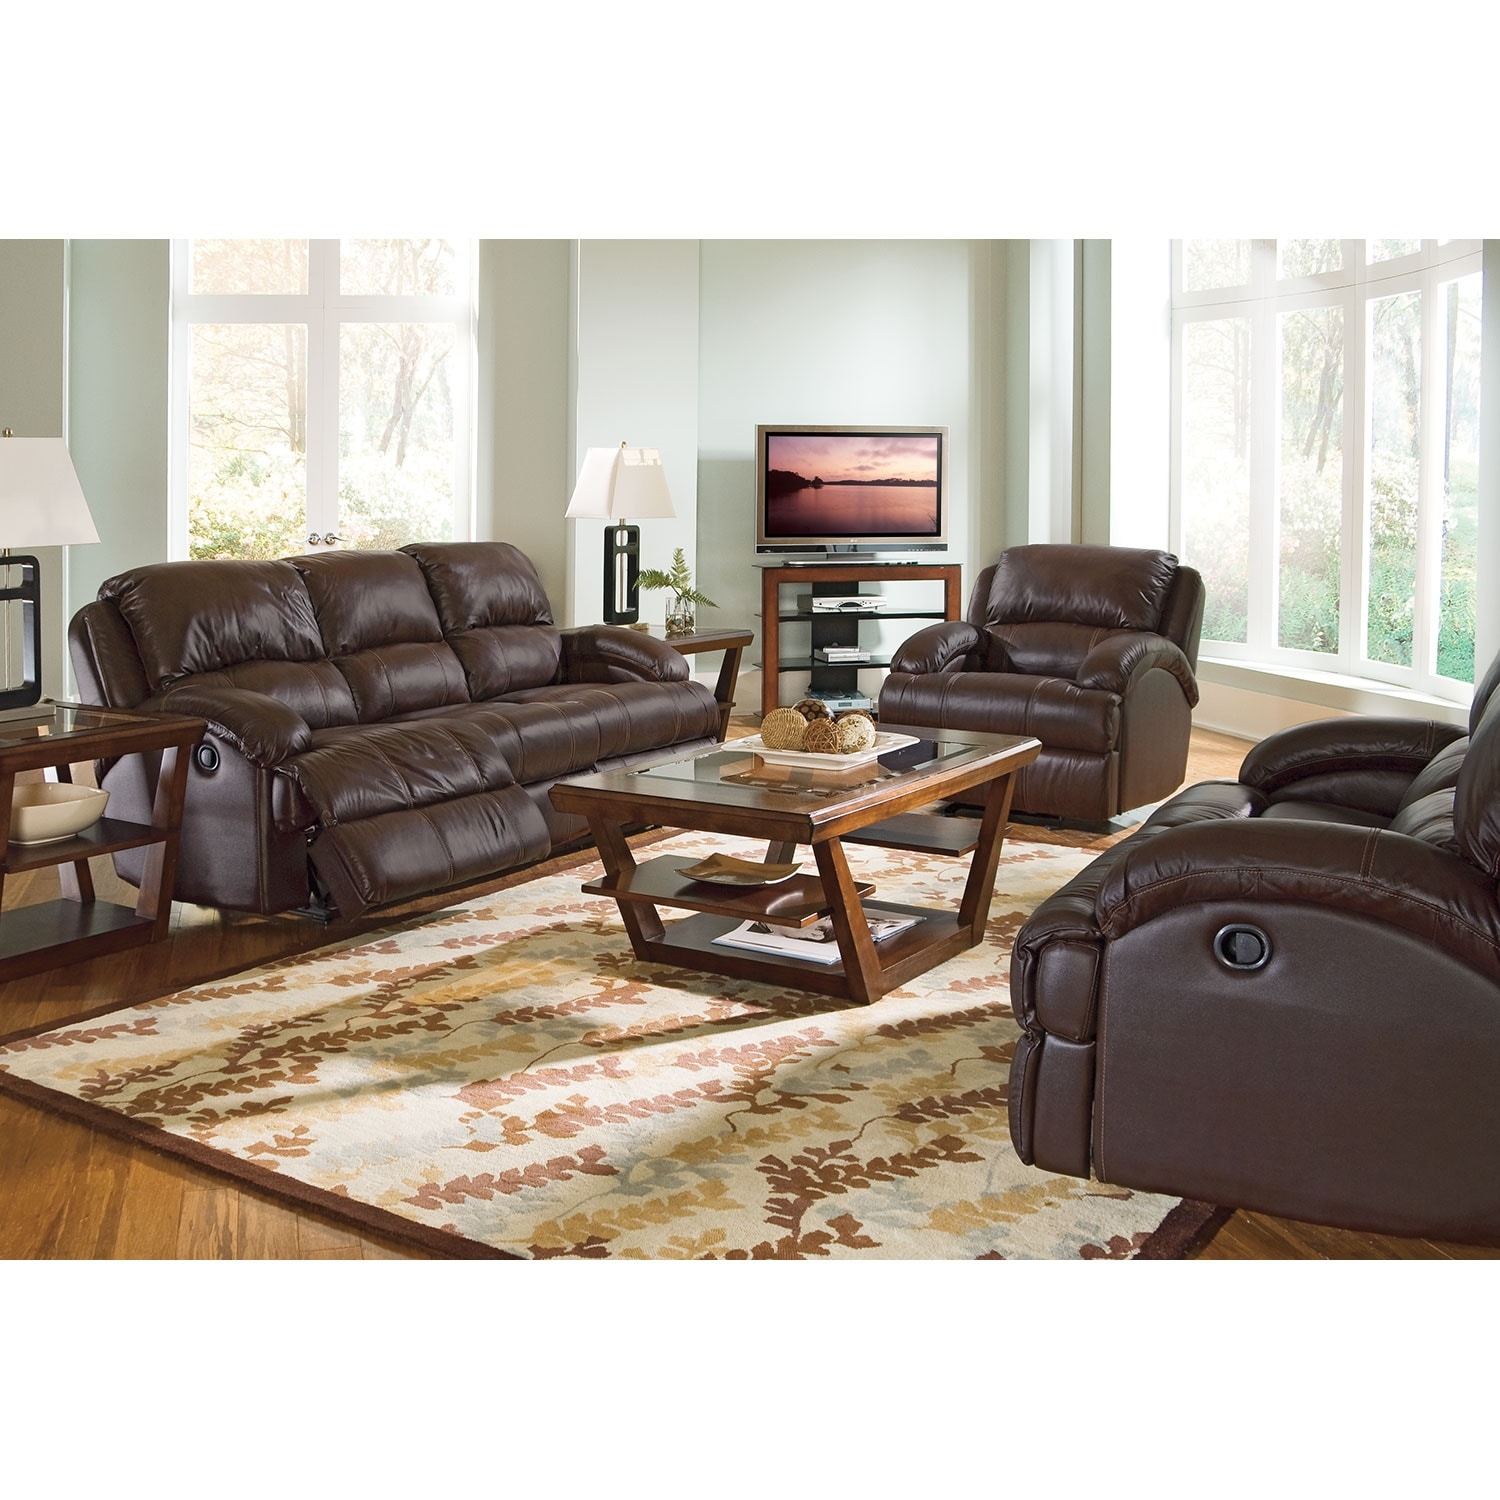 Nolan Dual Reclining Sofa Reclining Loveseat And Glider